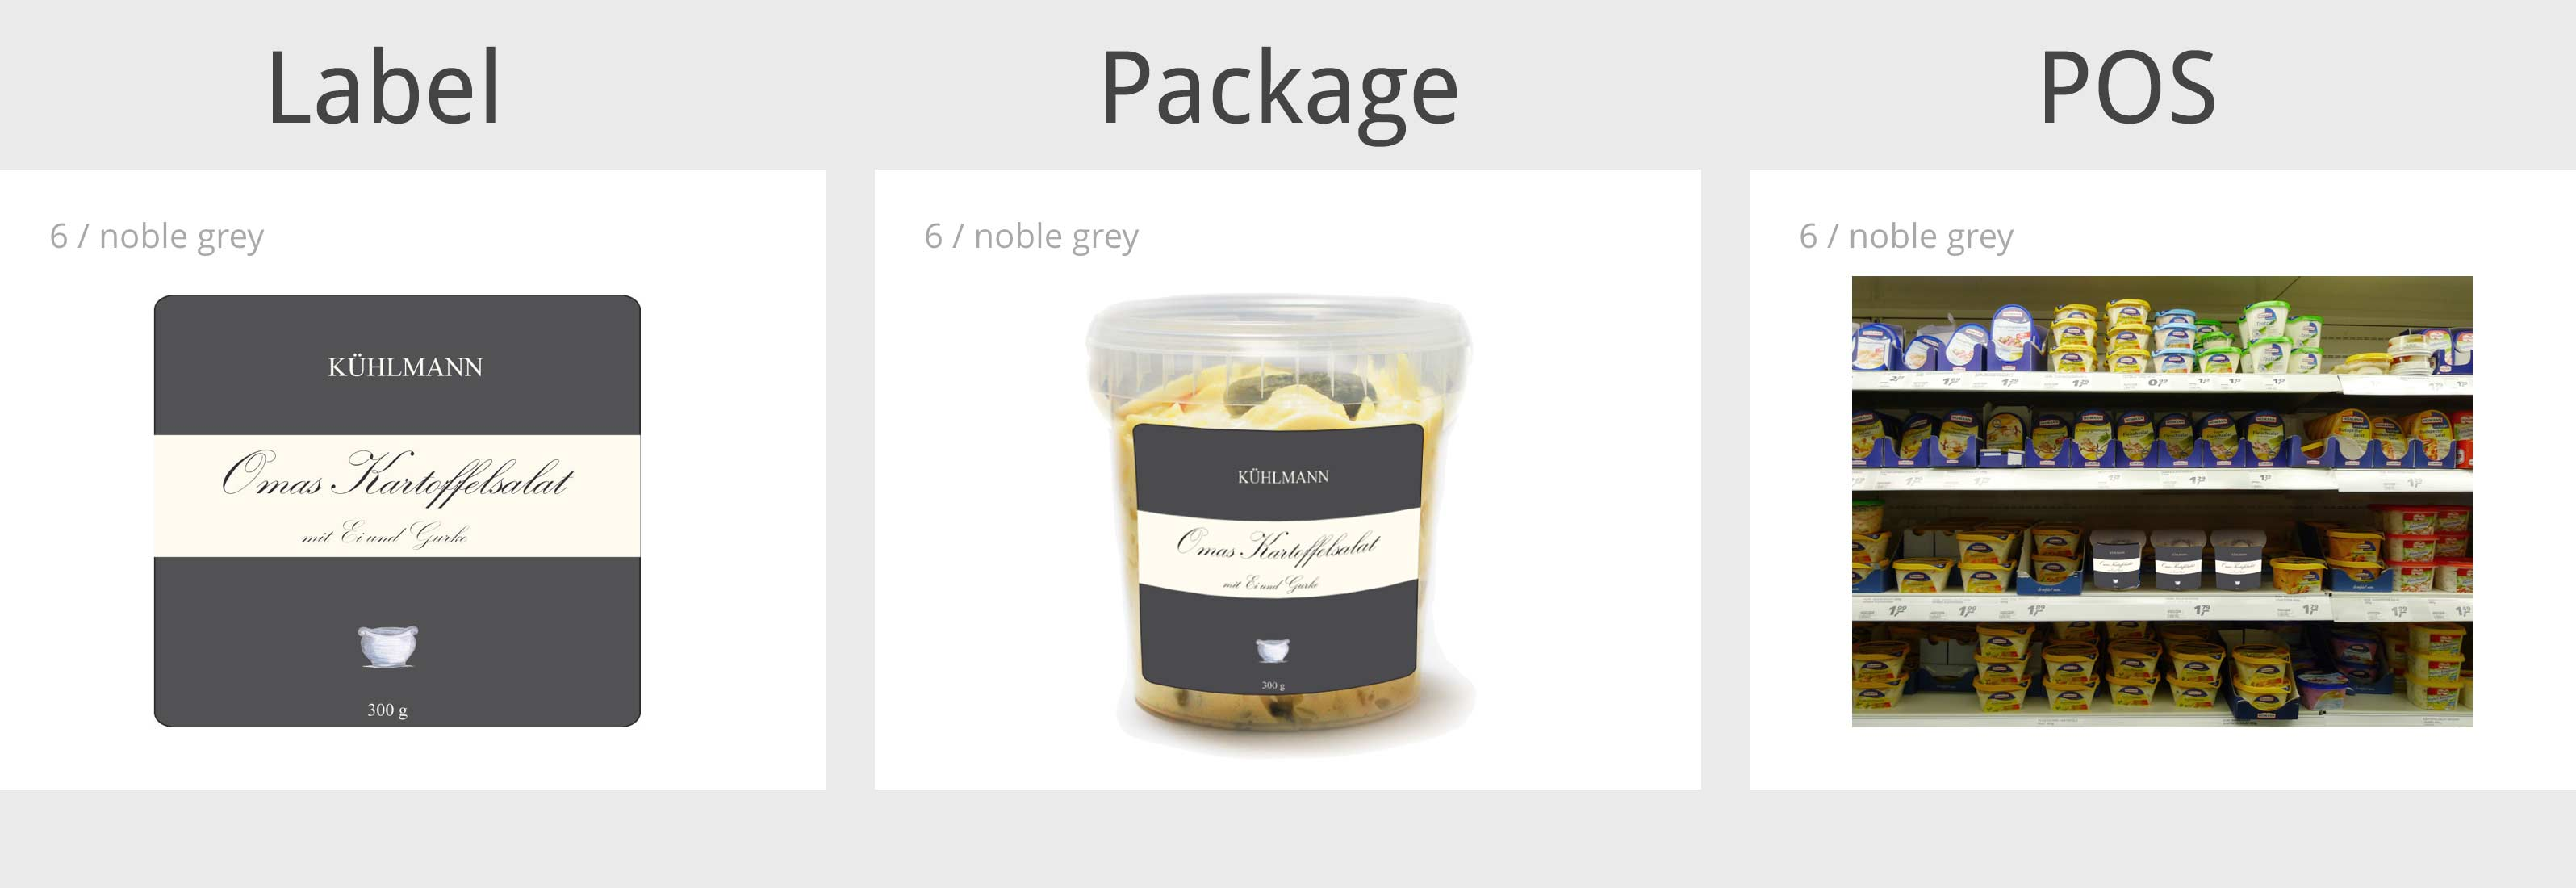 Research: Package Design